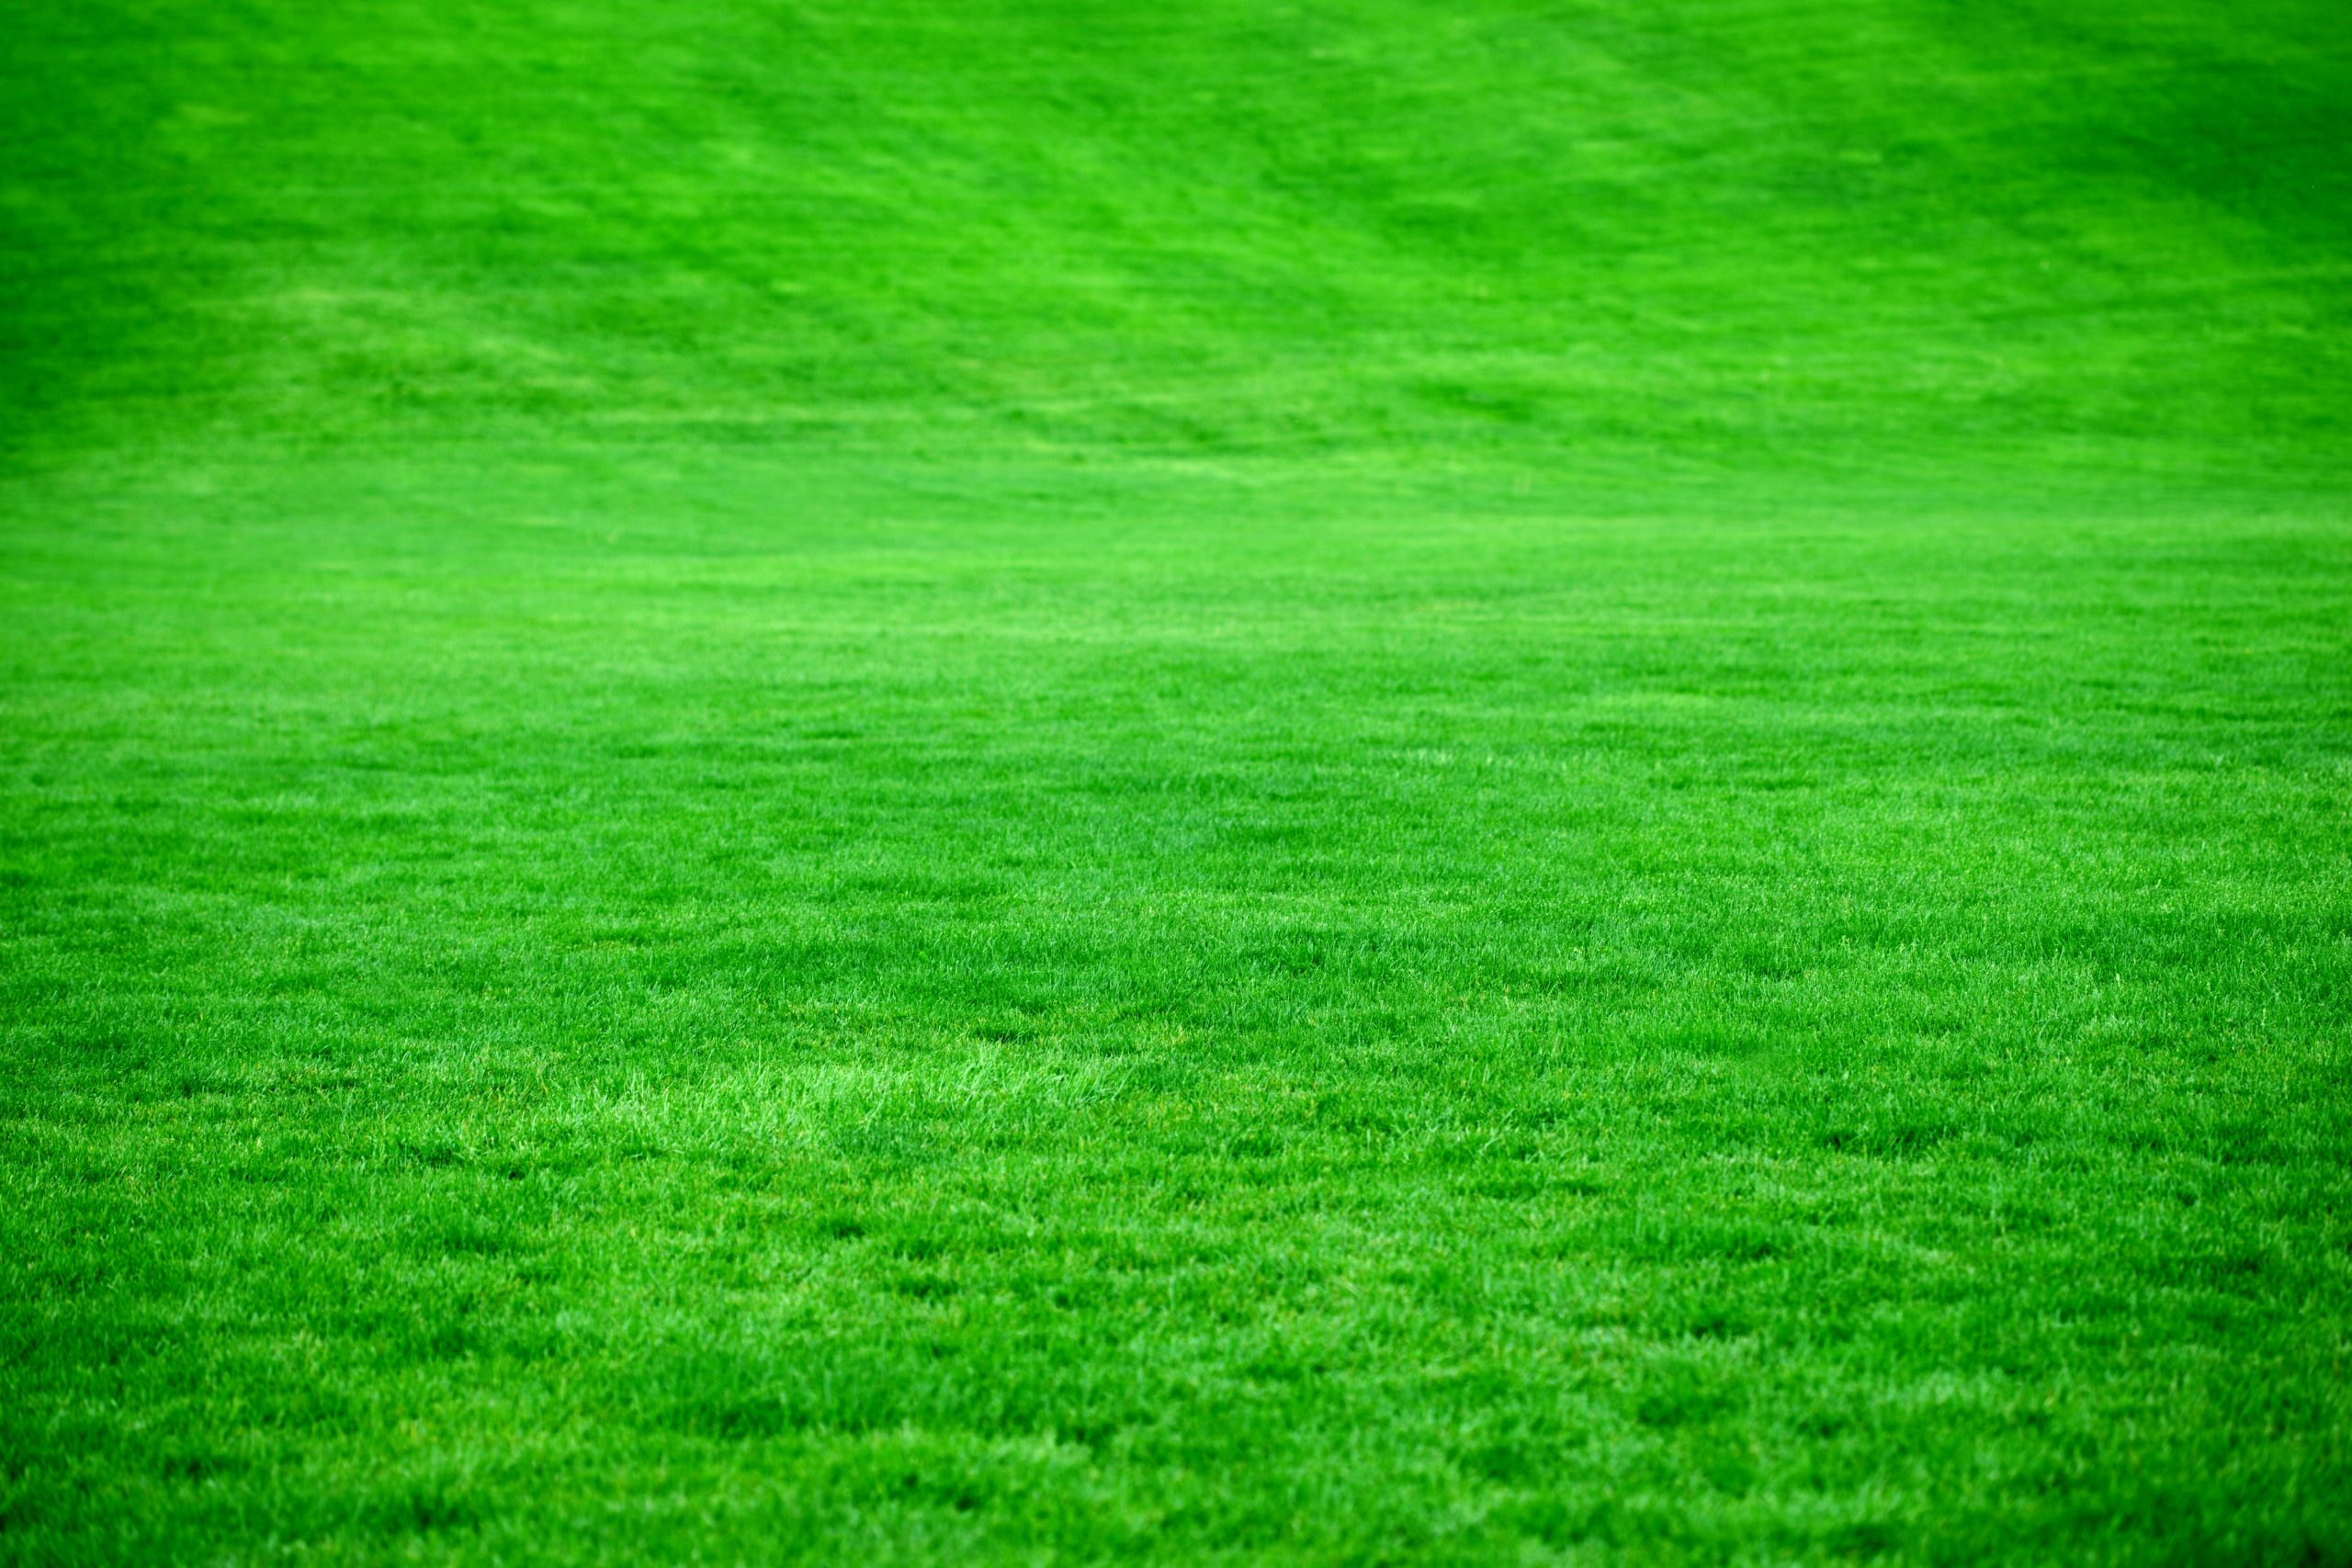 Cultivating a Lush Green Lawn